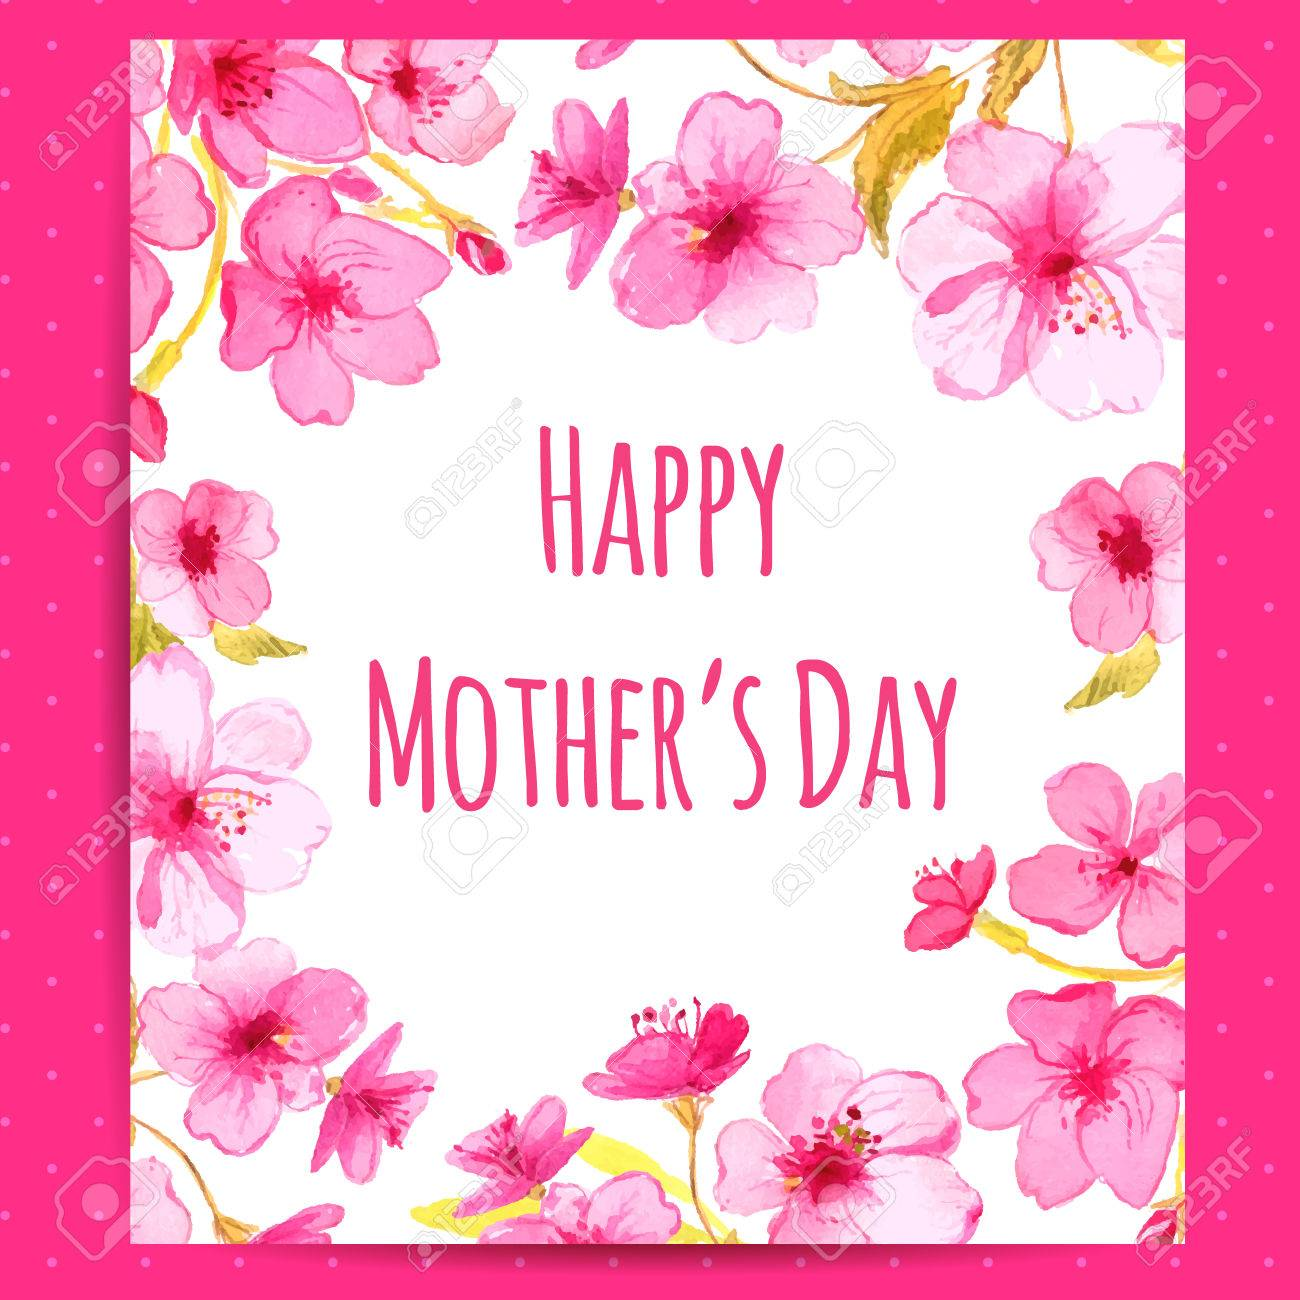 Happy Mothers Day Card With Cherry Blossom Frame Vector Layout